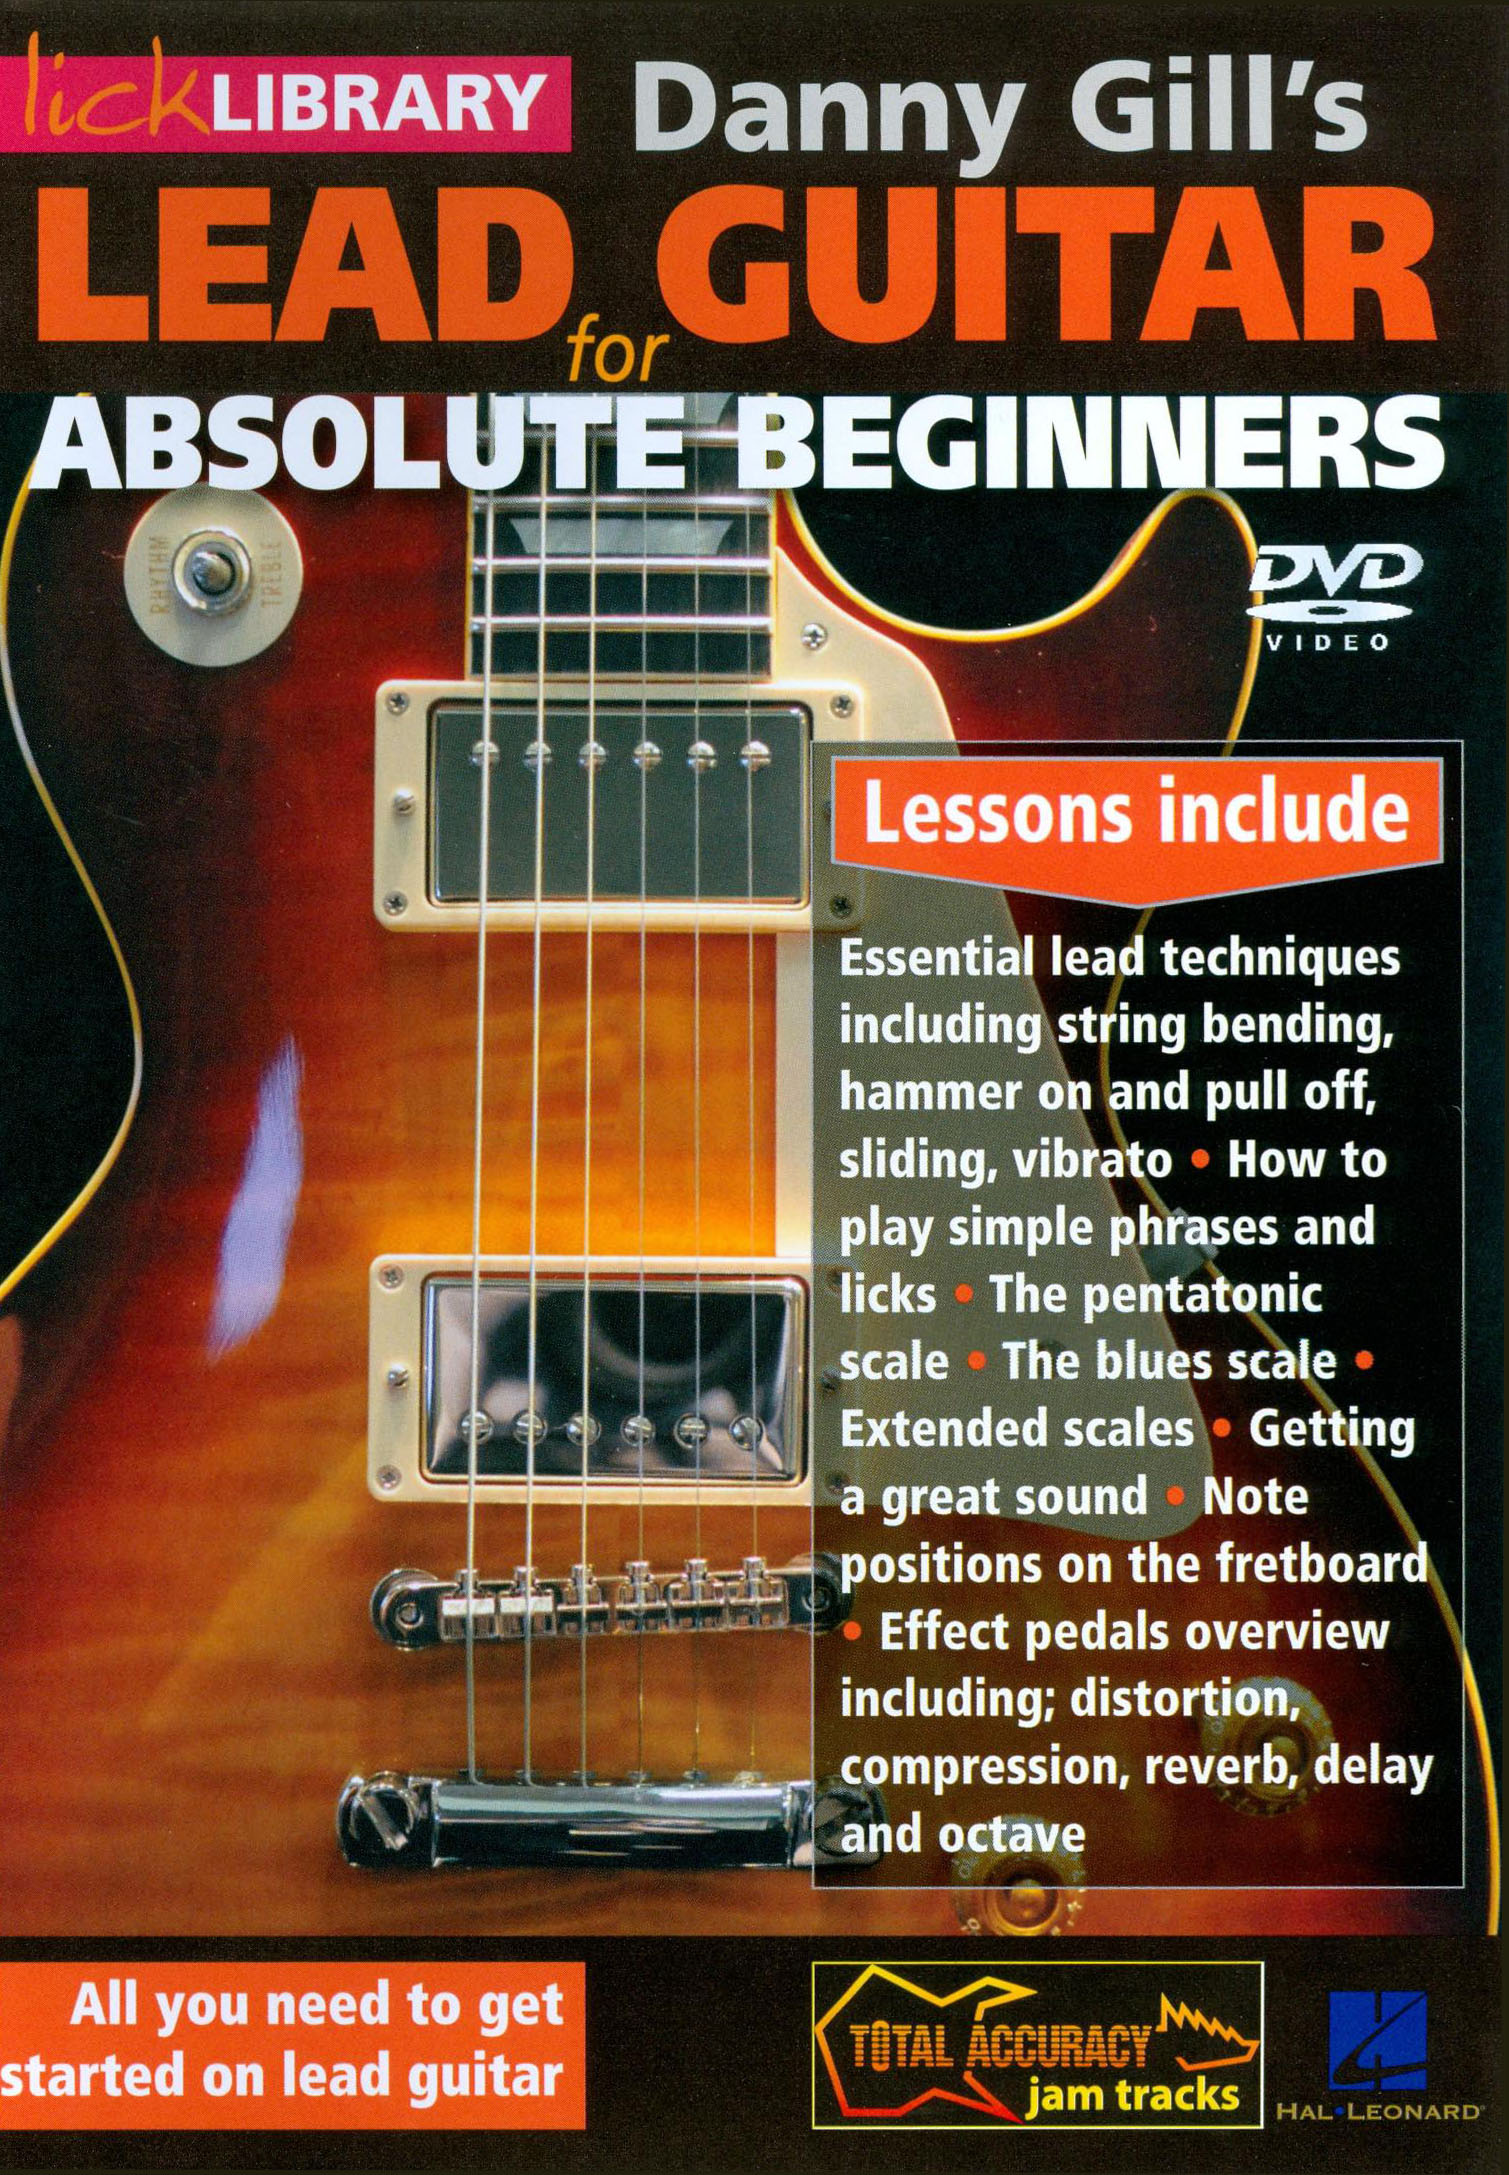 Danny Gill: Lead Guitar for Absolute Beginners